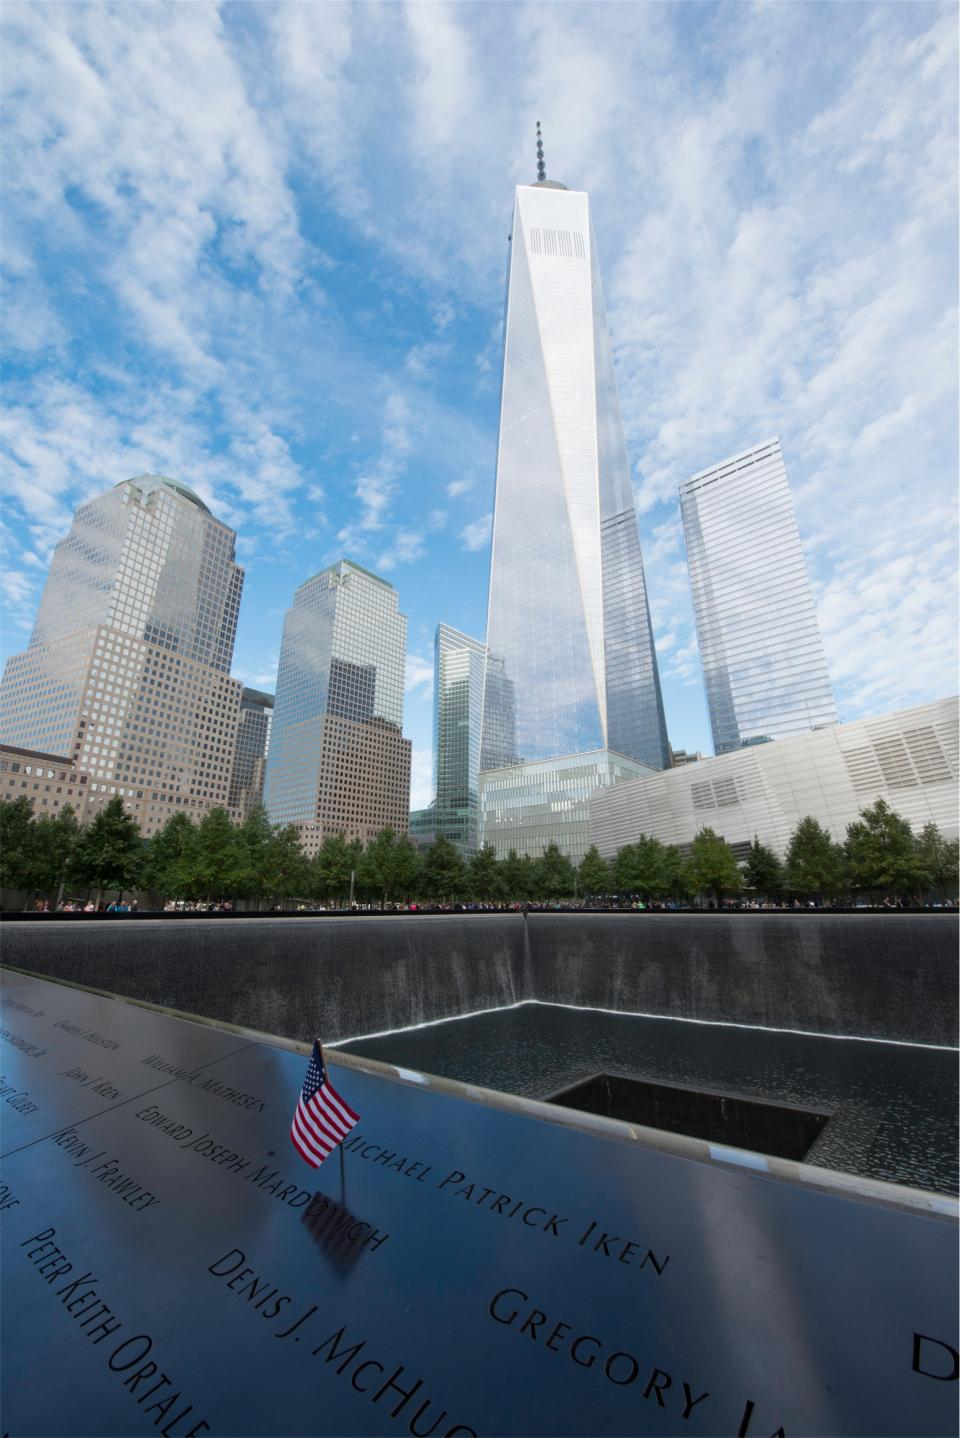 911 New York city twin towers NYC american flag USA buildings architecture memorial